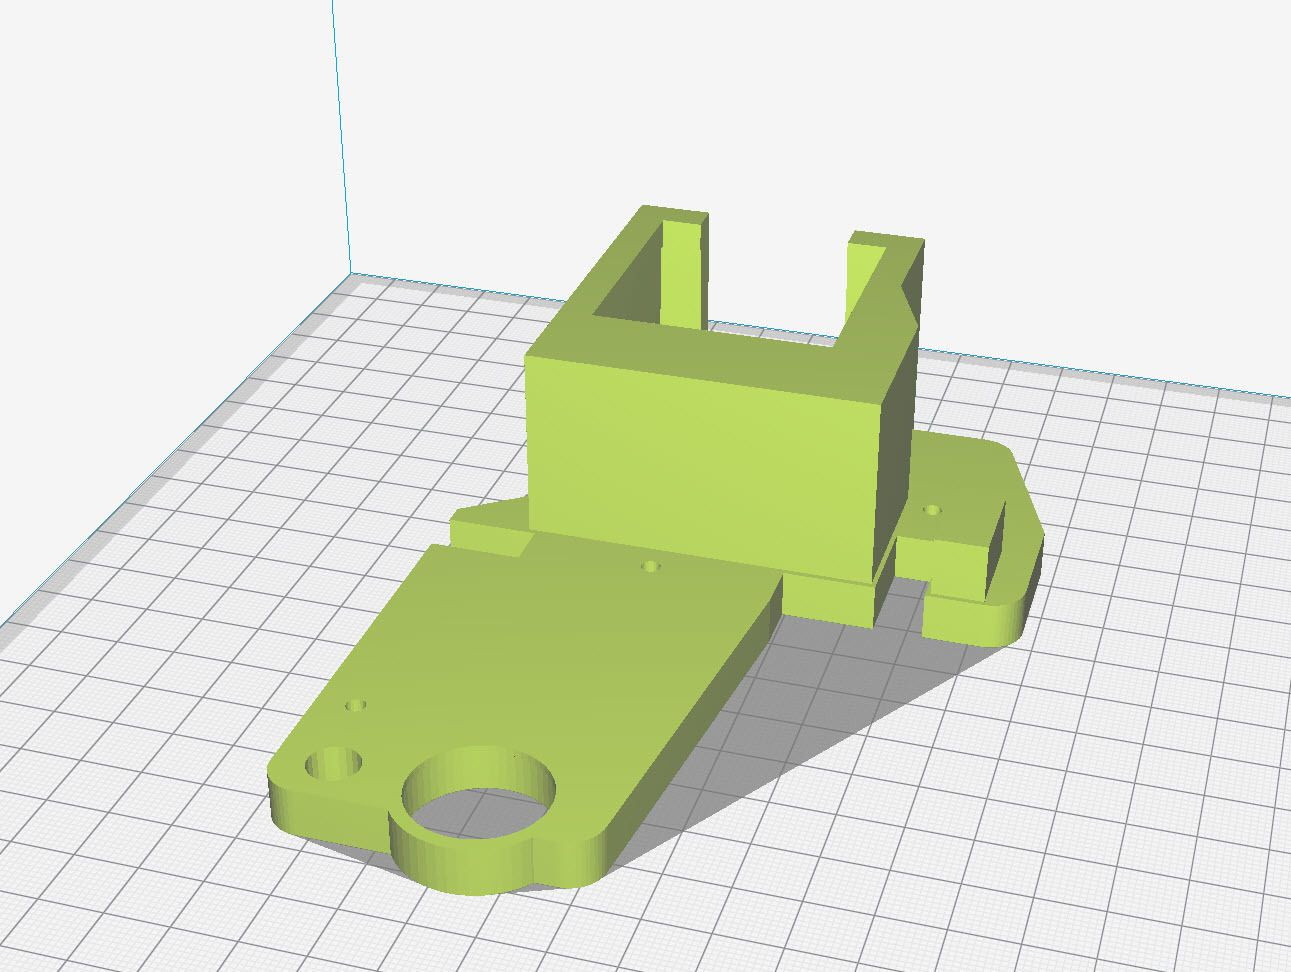 2018-06-04_17-44-41.jpg Download free STL file Top Right Bowden w/o mSD Mount • Object to 3D print, Concept-D